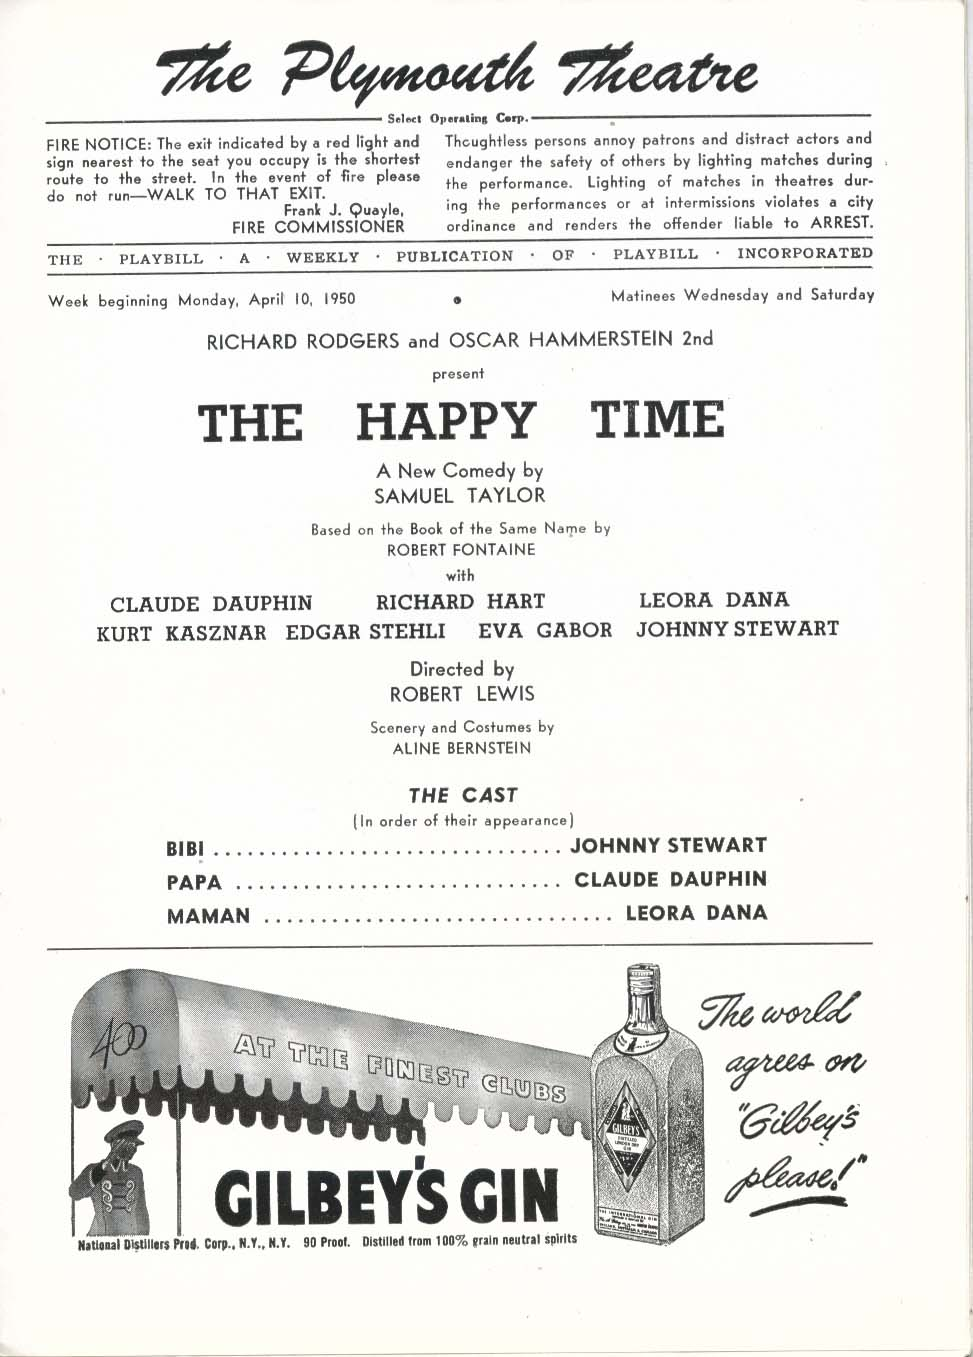 Image for The Happy Time Playbill 4/10/50 Eva Gabor Kurt Kasznar Claude Dauphin Plymouth